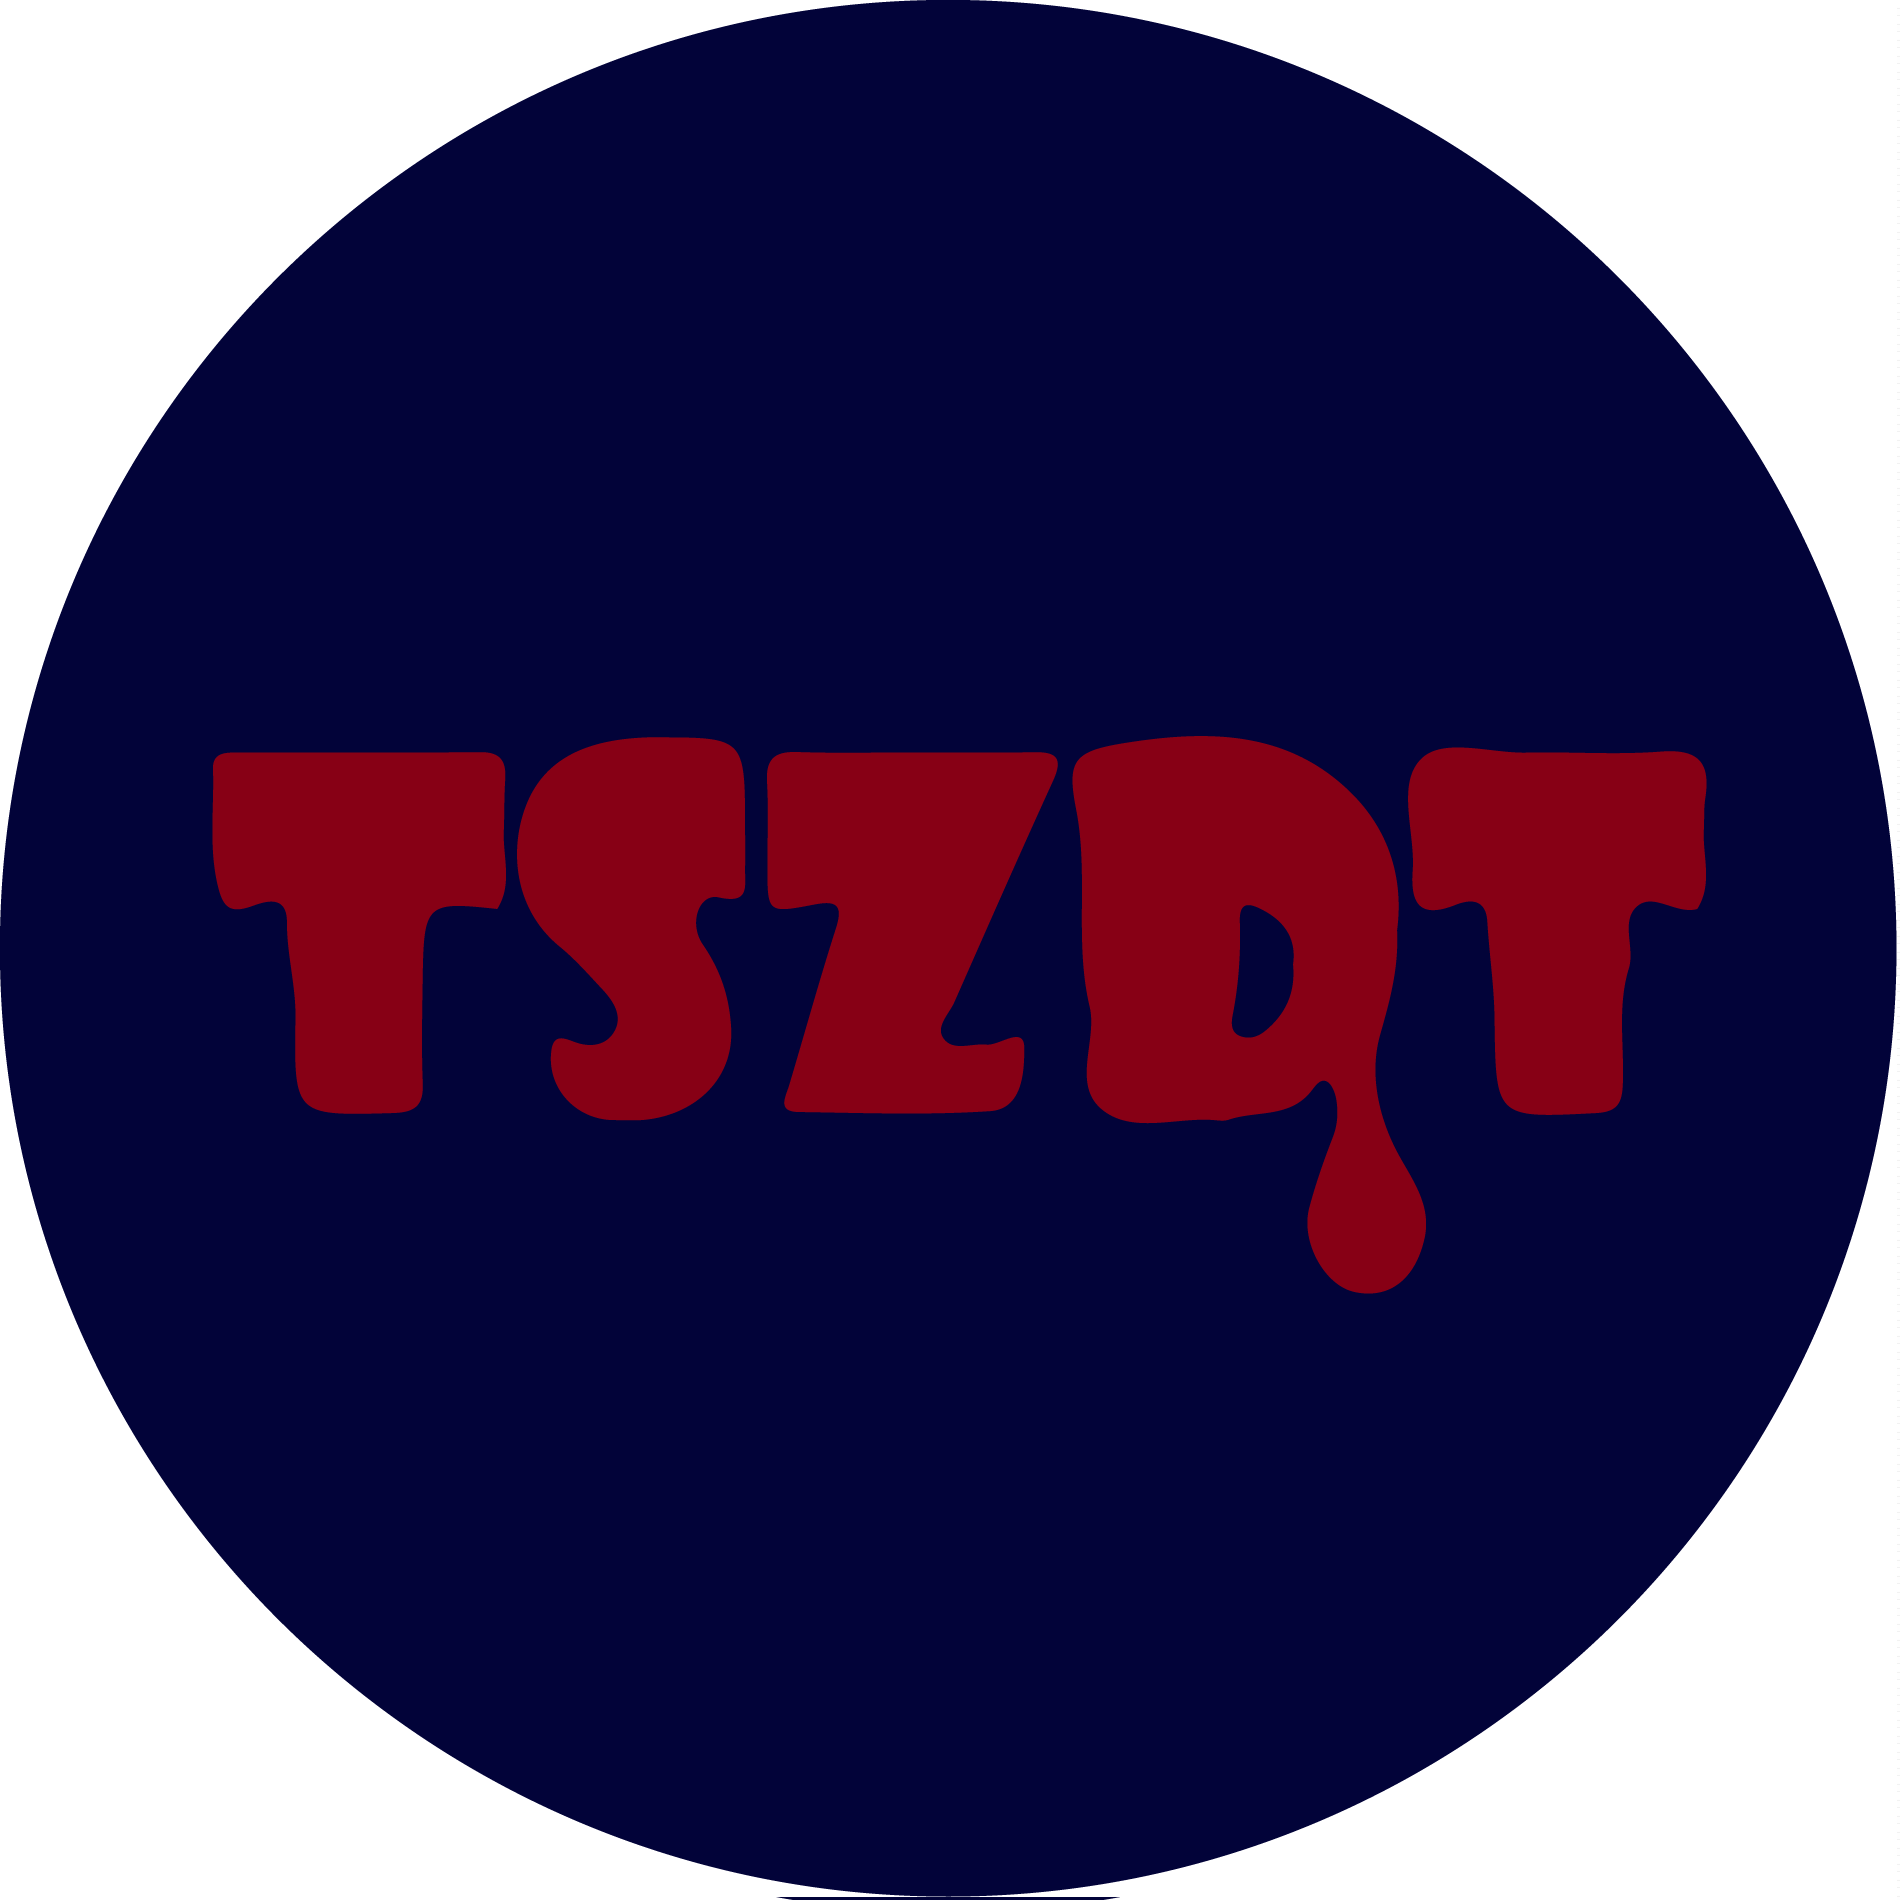 TSZDT's The 1,000 Greatest Horror Films's icon